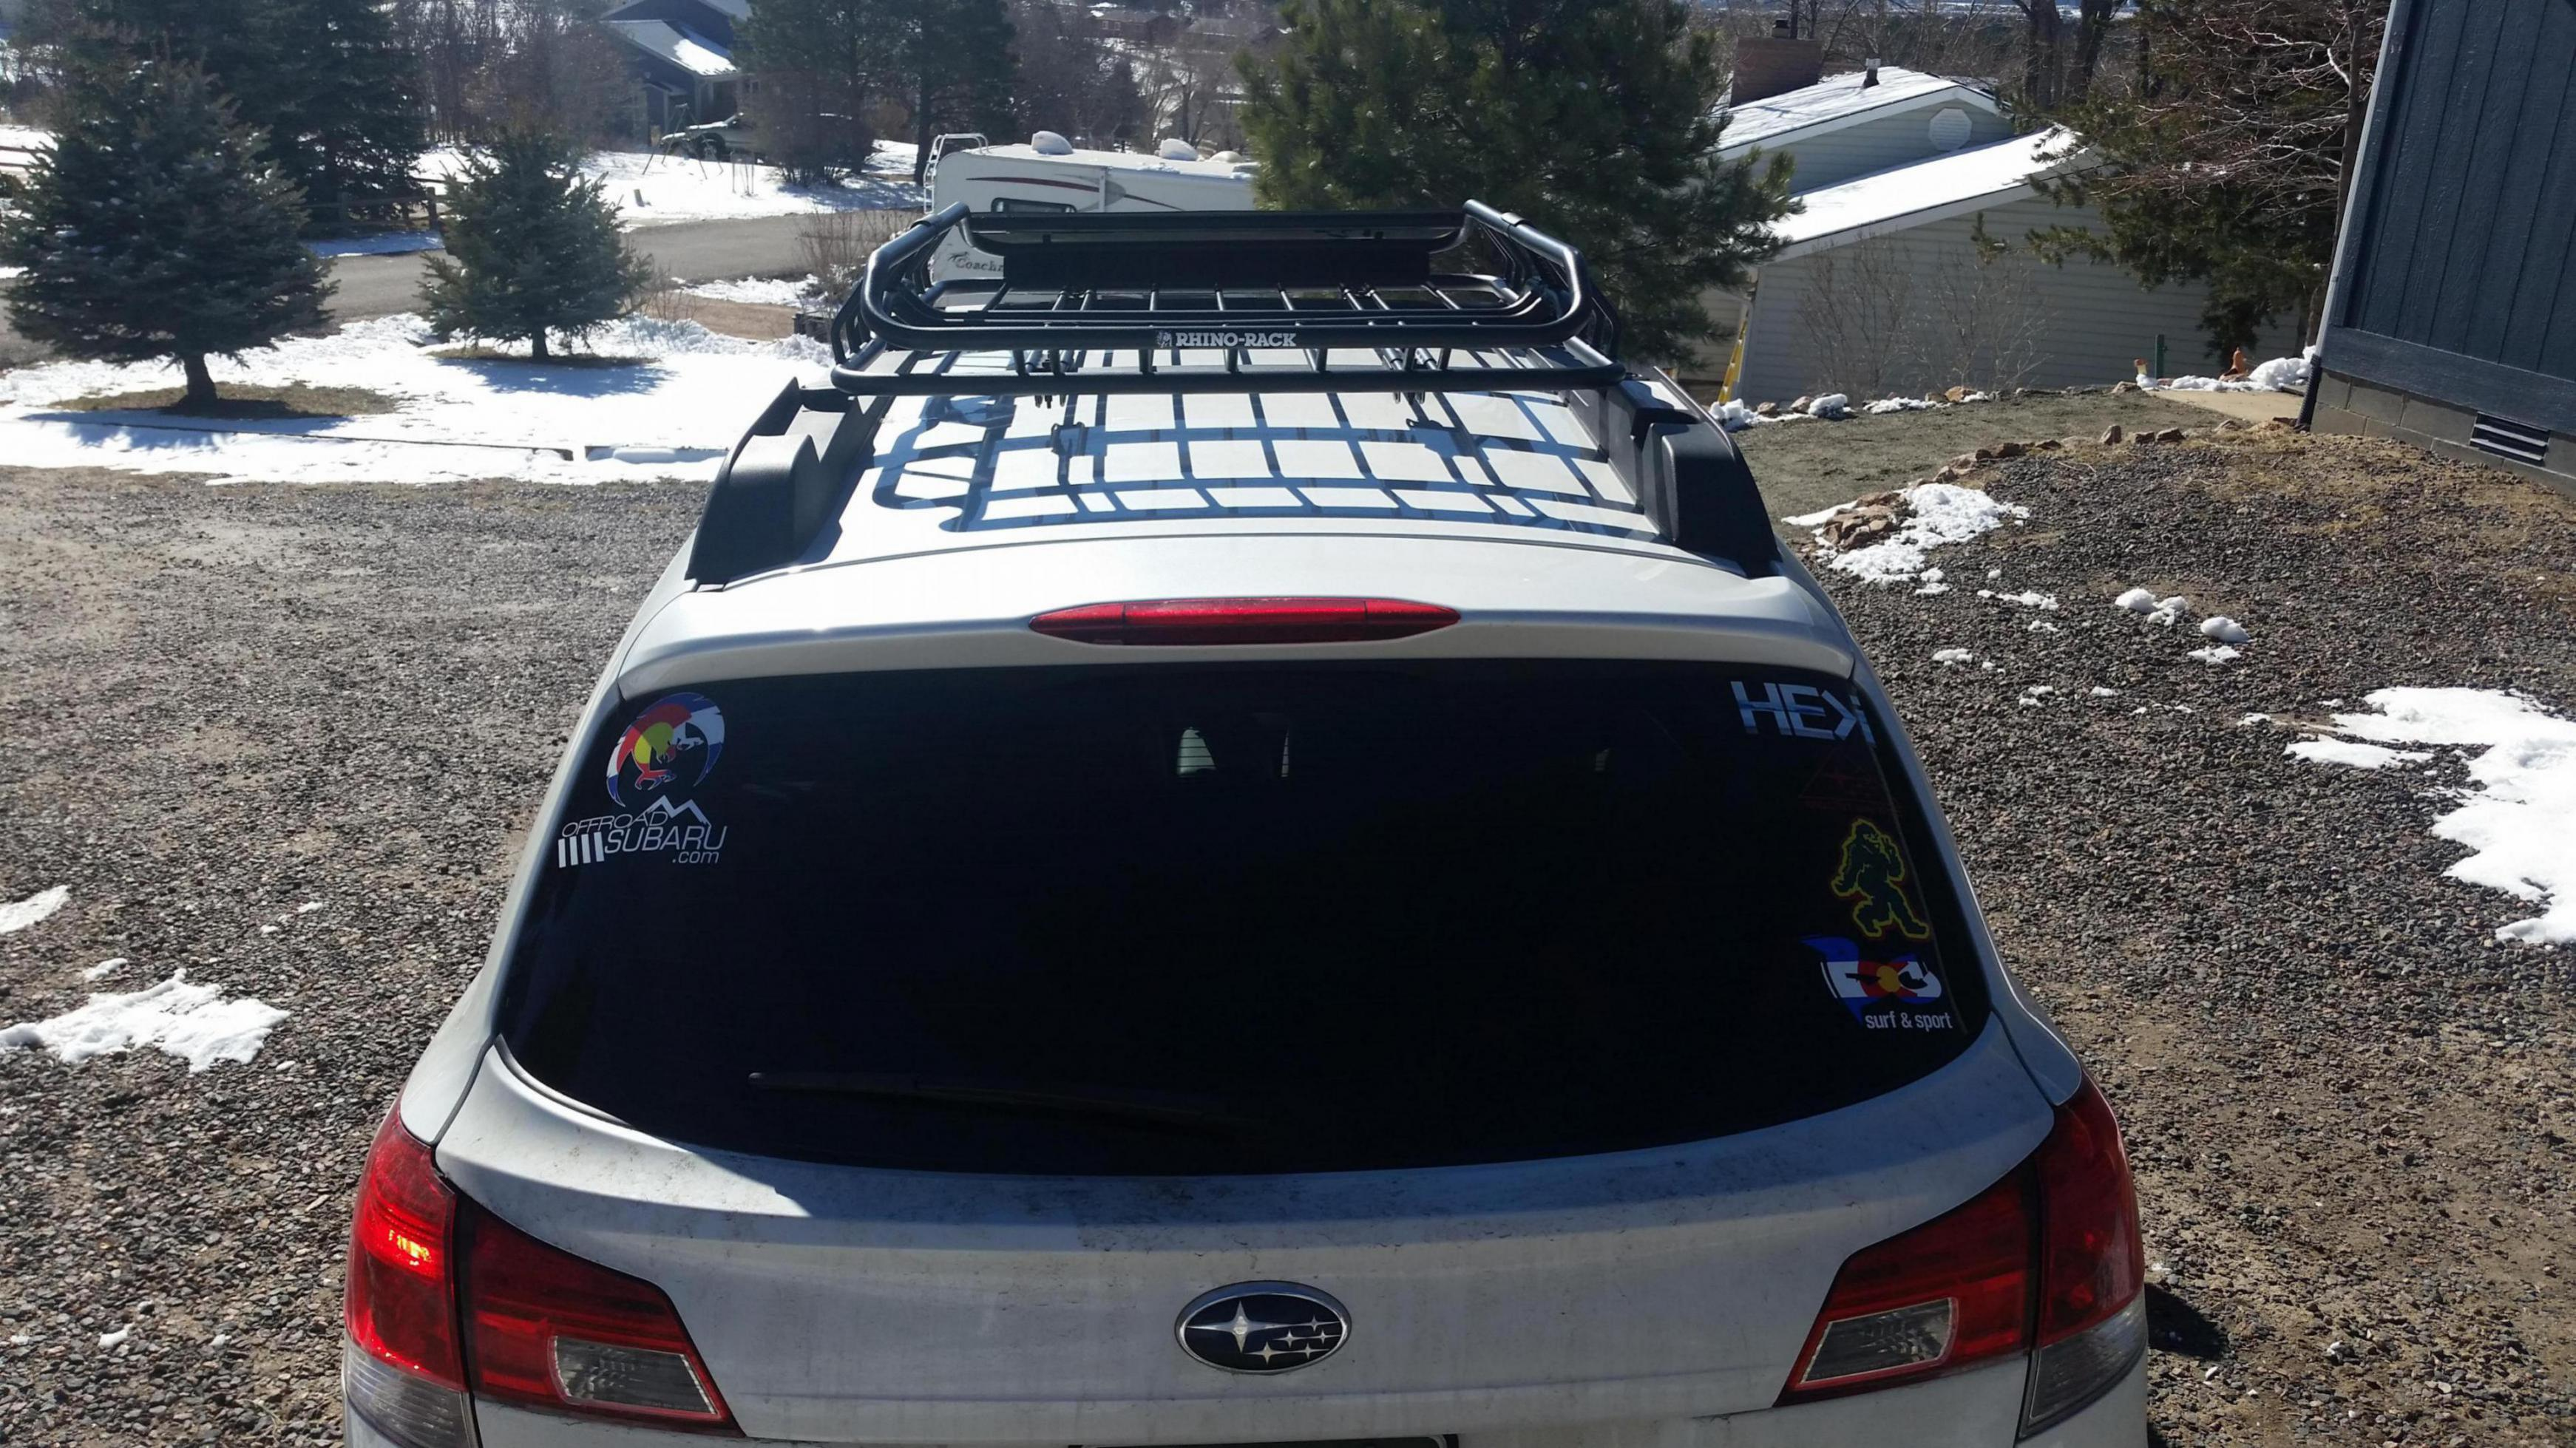 Post Pics Of Your 4th Gen Outback - Page 208